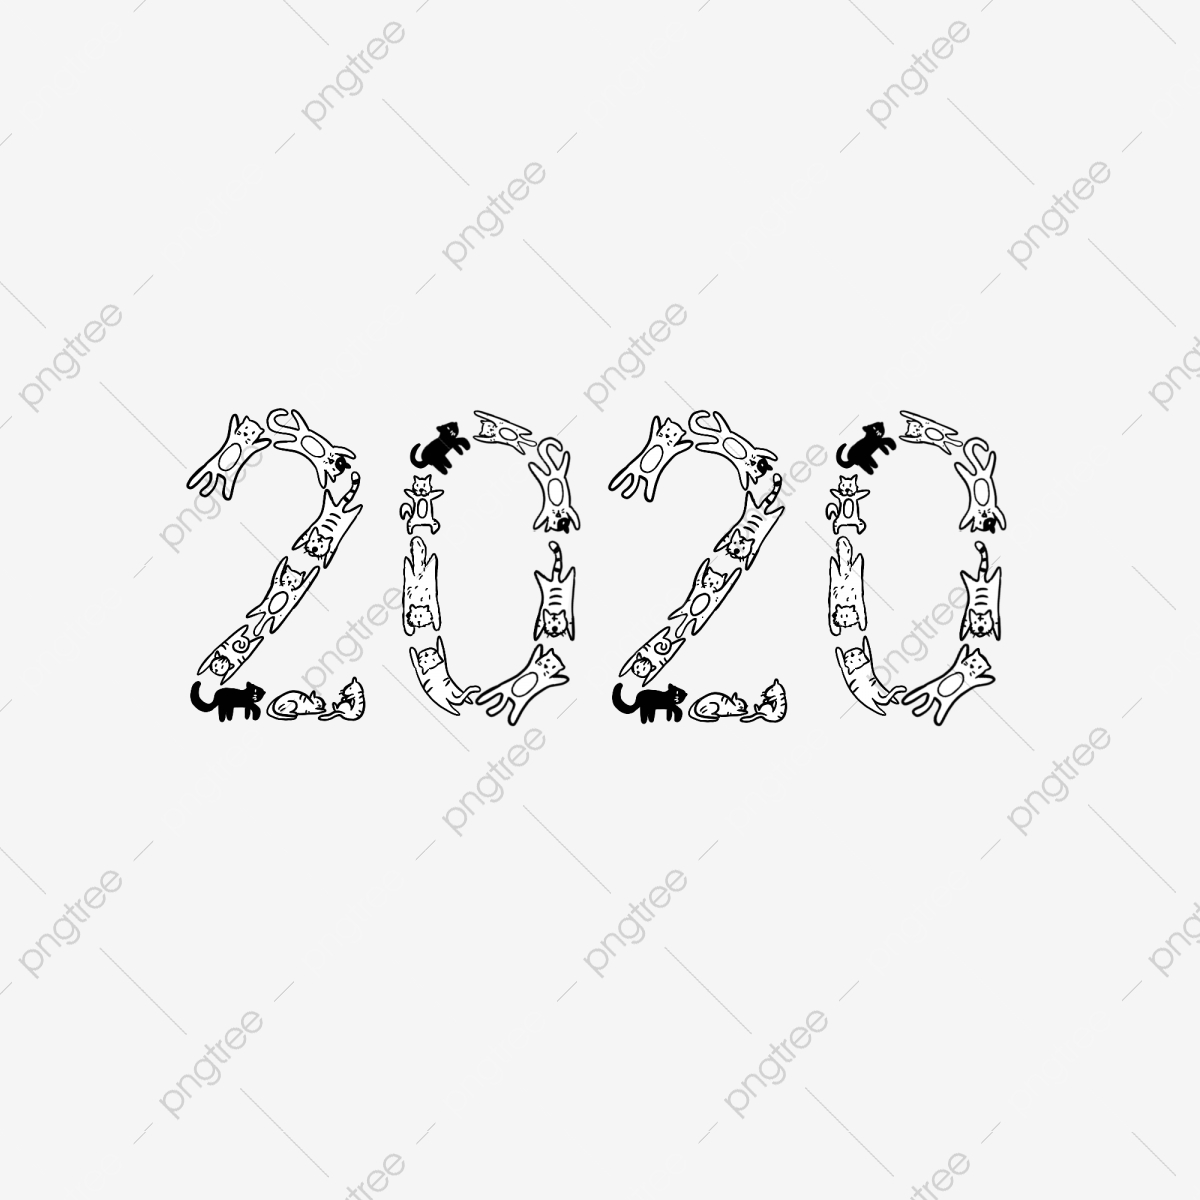 Download New Year Clipart Black And White 2020